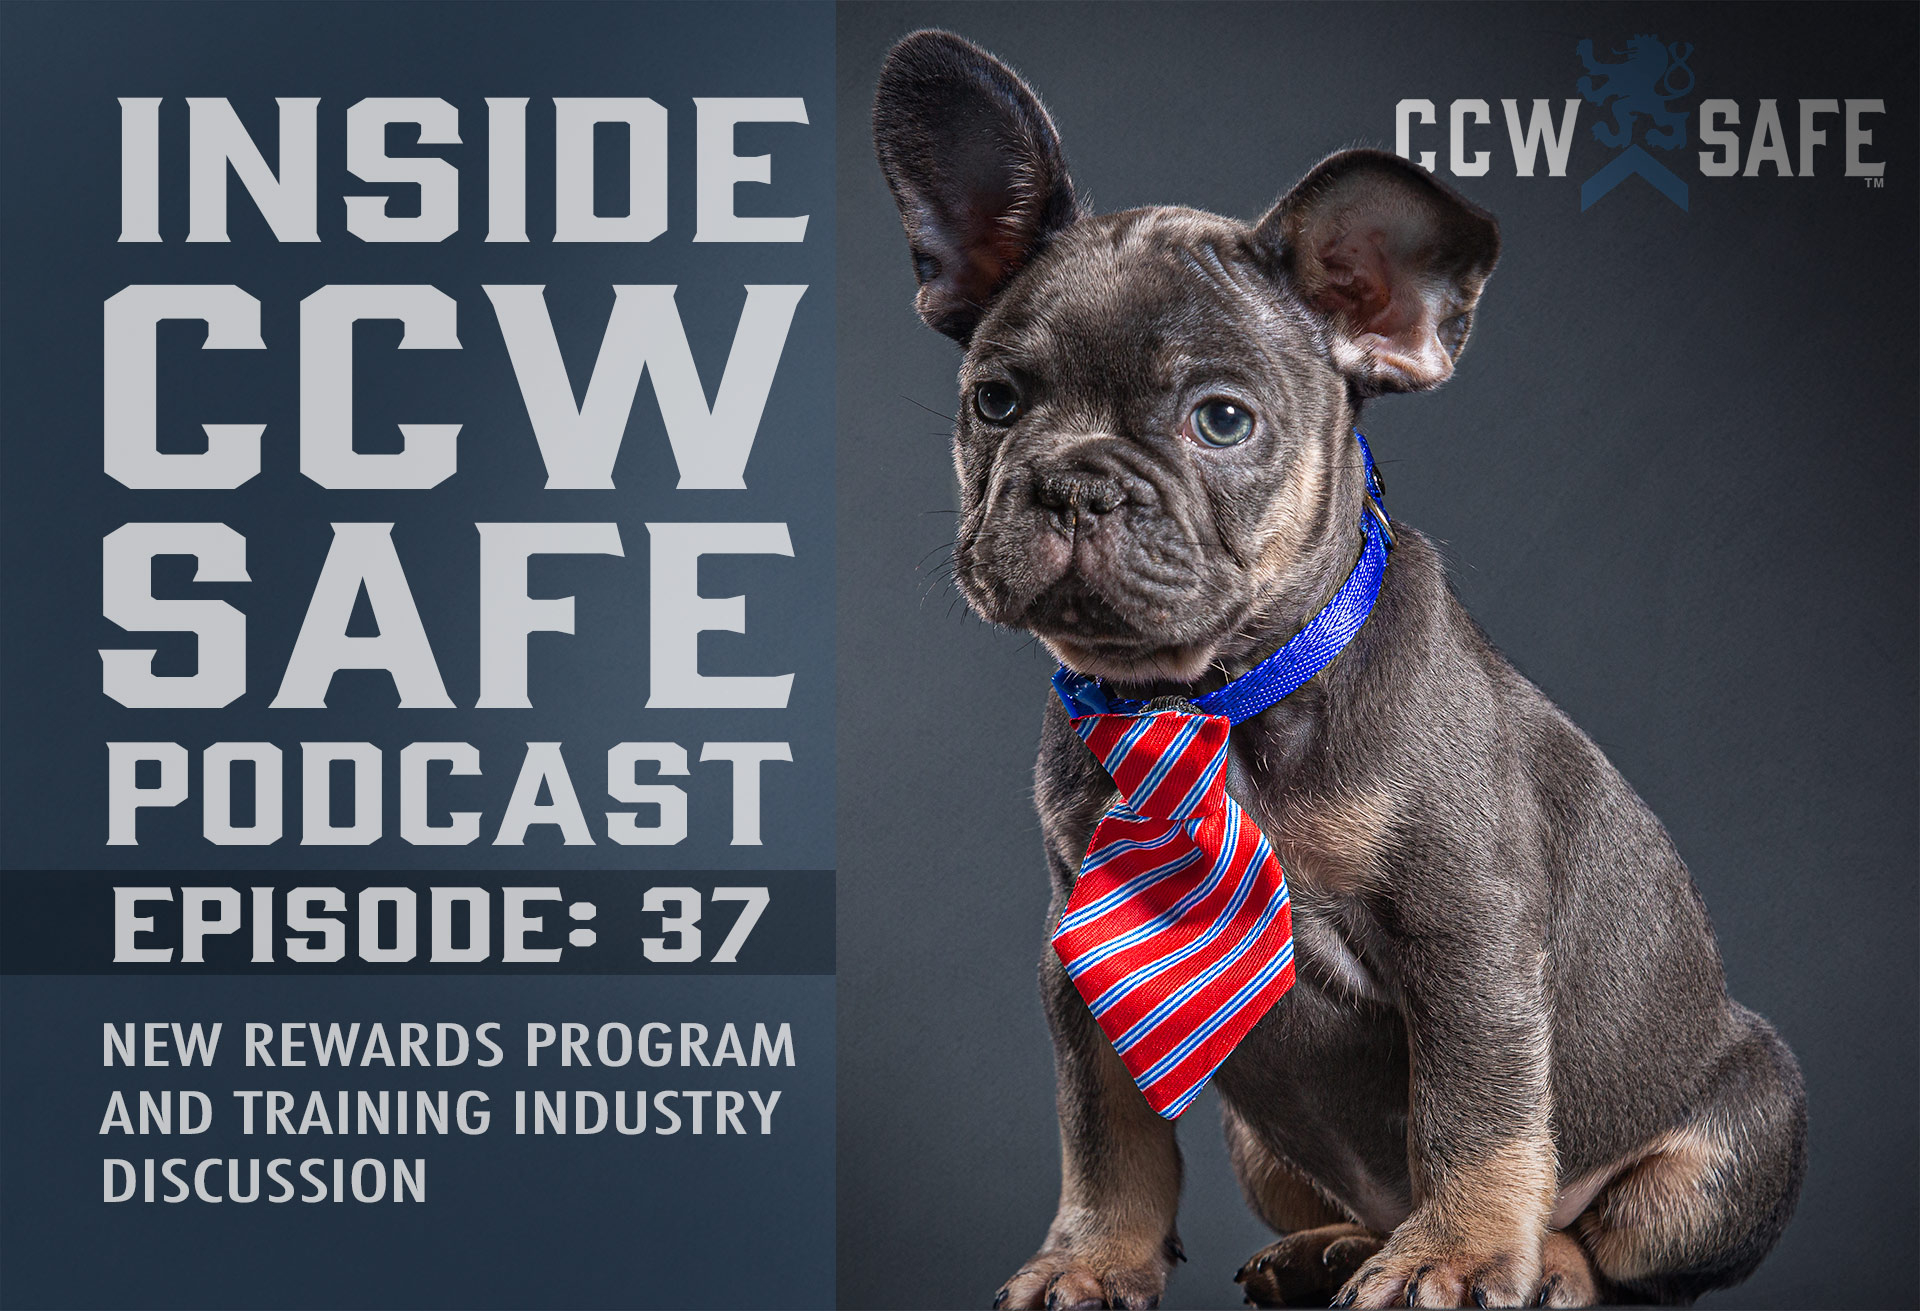 Inside CCW Safe Podcast-Episode 37: New Rewards Program and Training Industry Discussion